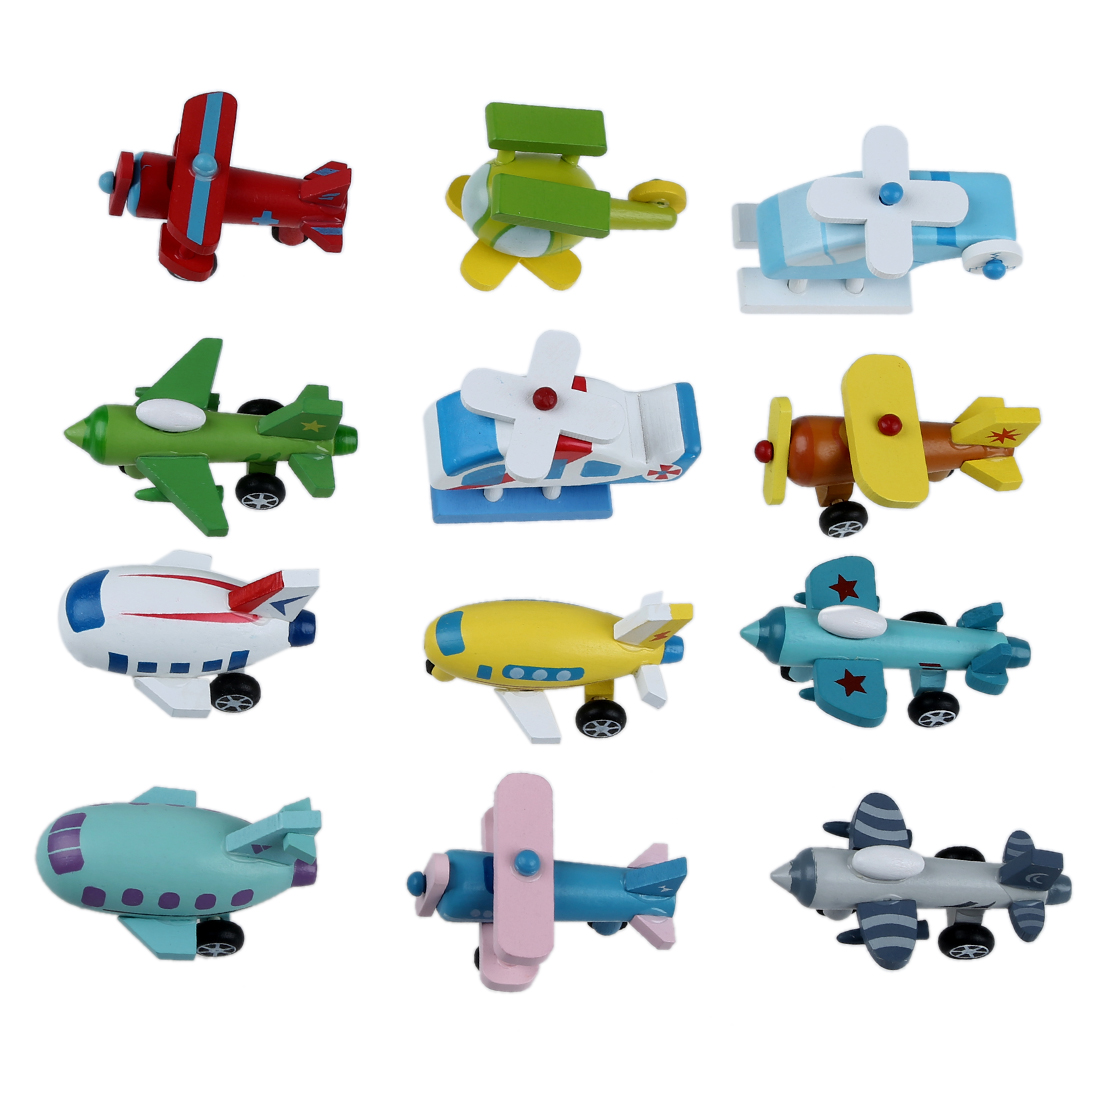 Set of 12 Wooden Airplane Model Educational Toys(China)